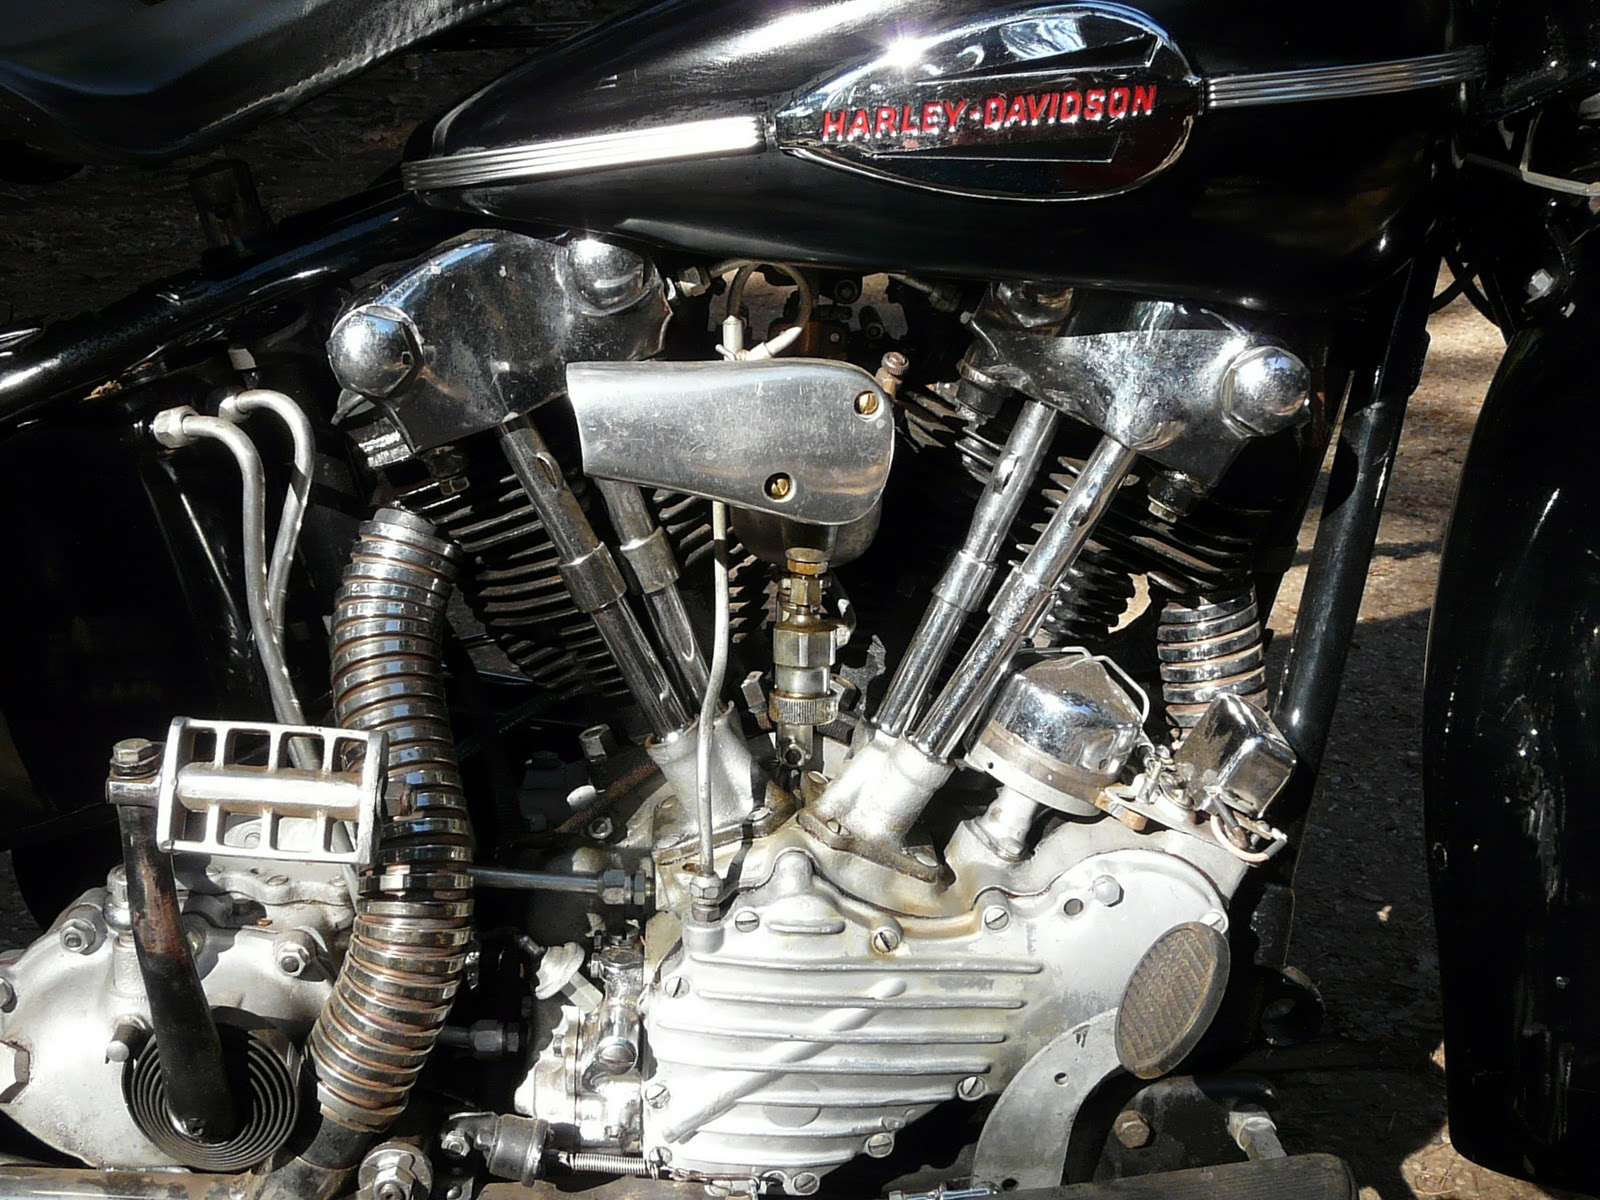 1942 Harley Knucklehead motorcycle motor close-up